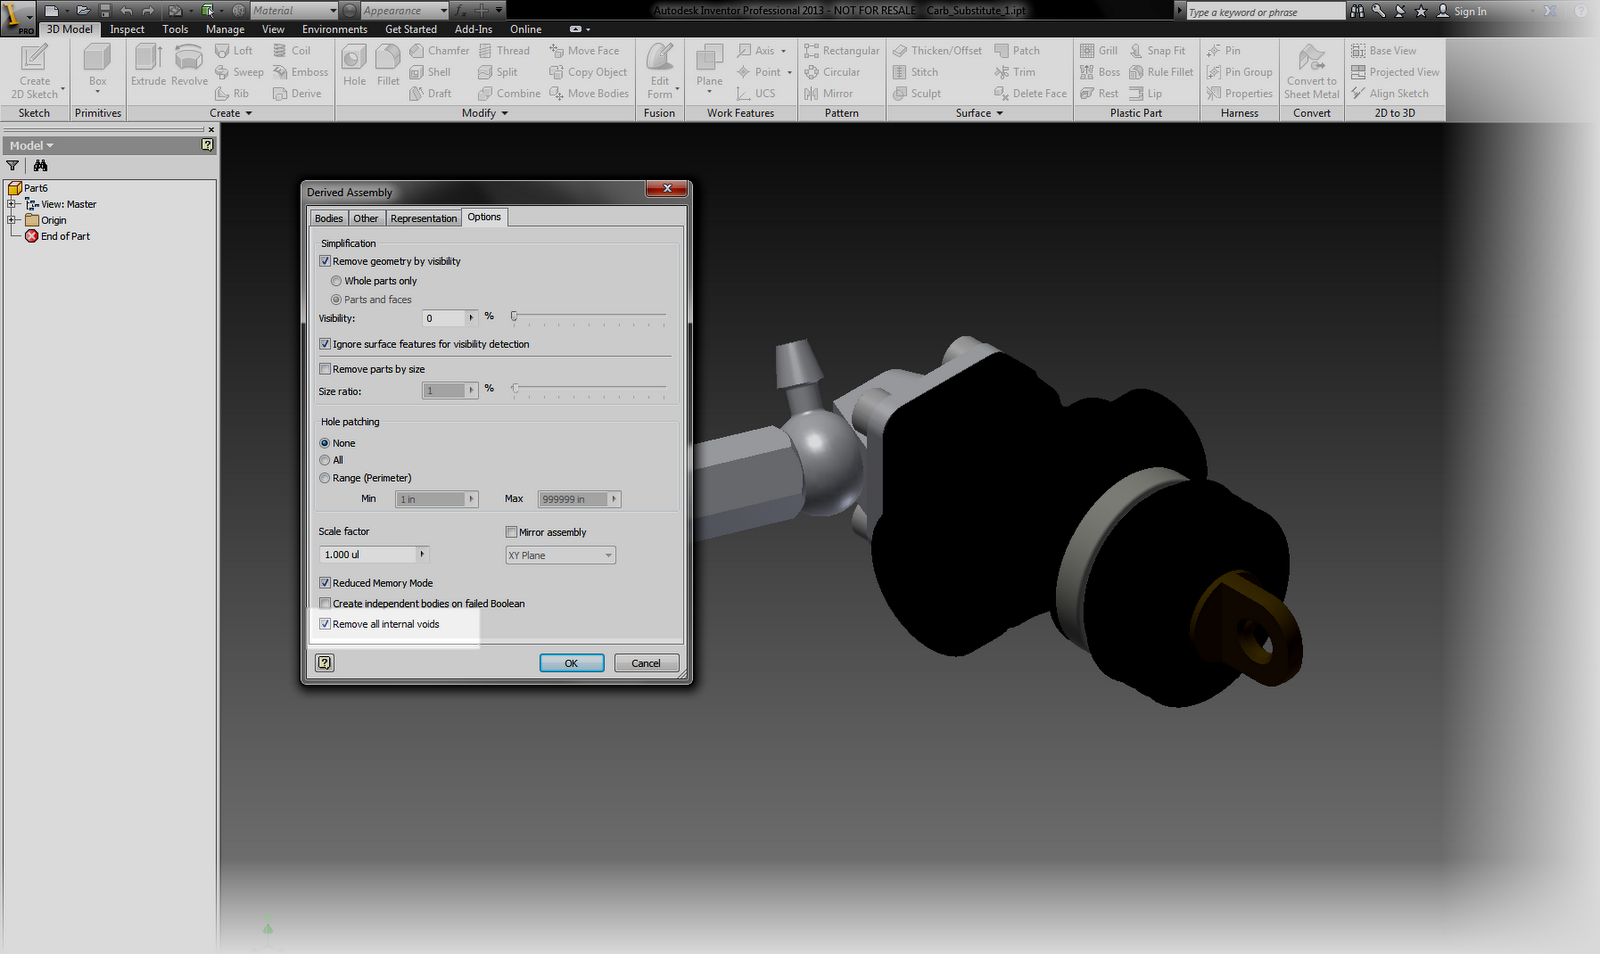 Buy Autodesk Inventor Pro 2013 64-bit download for Windows :: DOWN